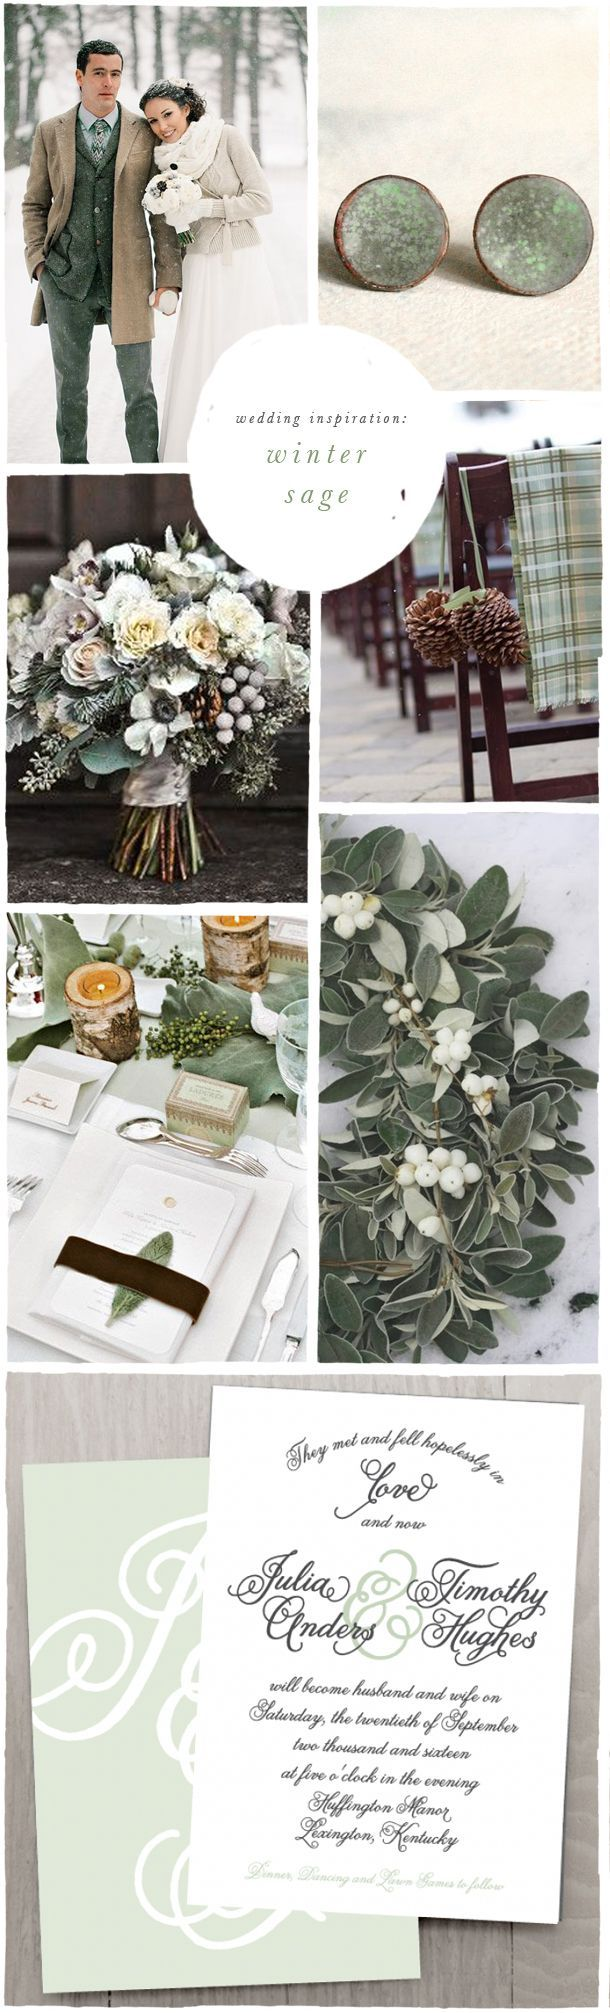 Holidays and Events: Winter Sage Wedding inspiration | Smitten On Paper...